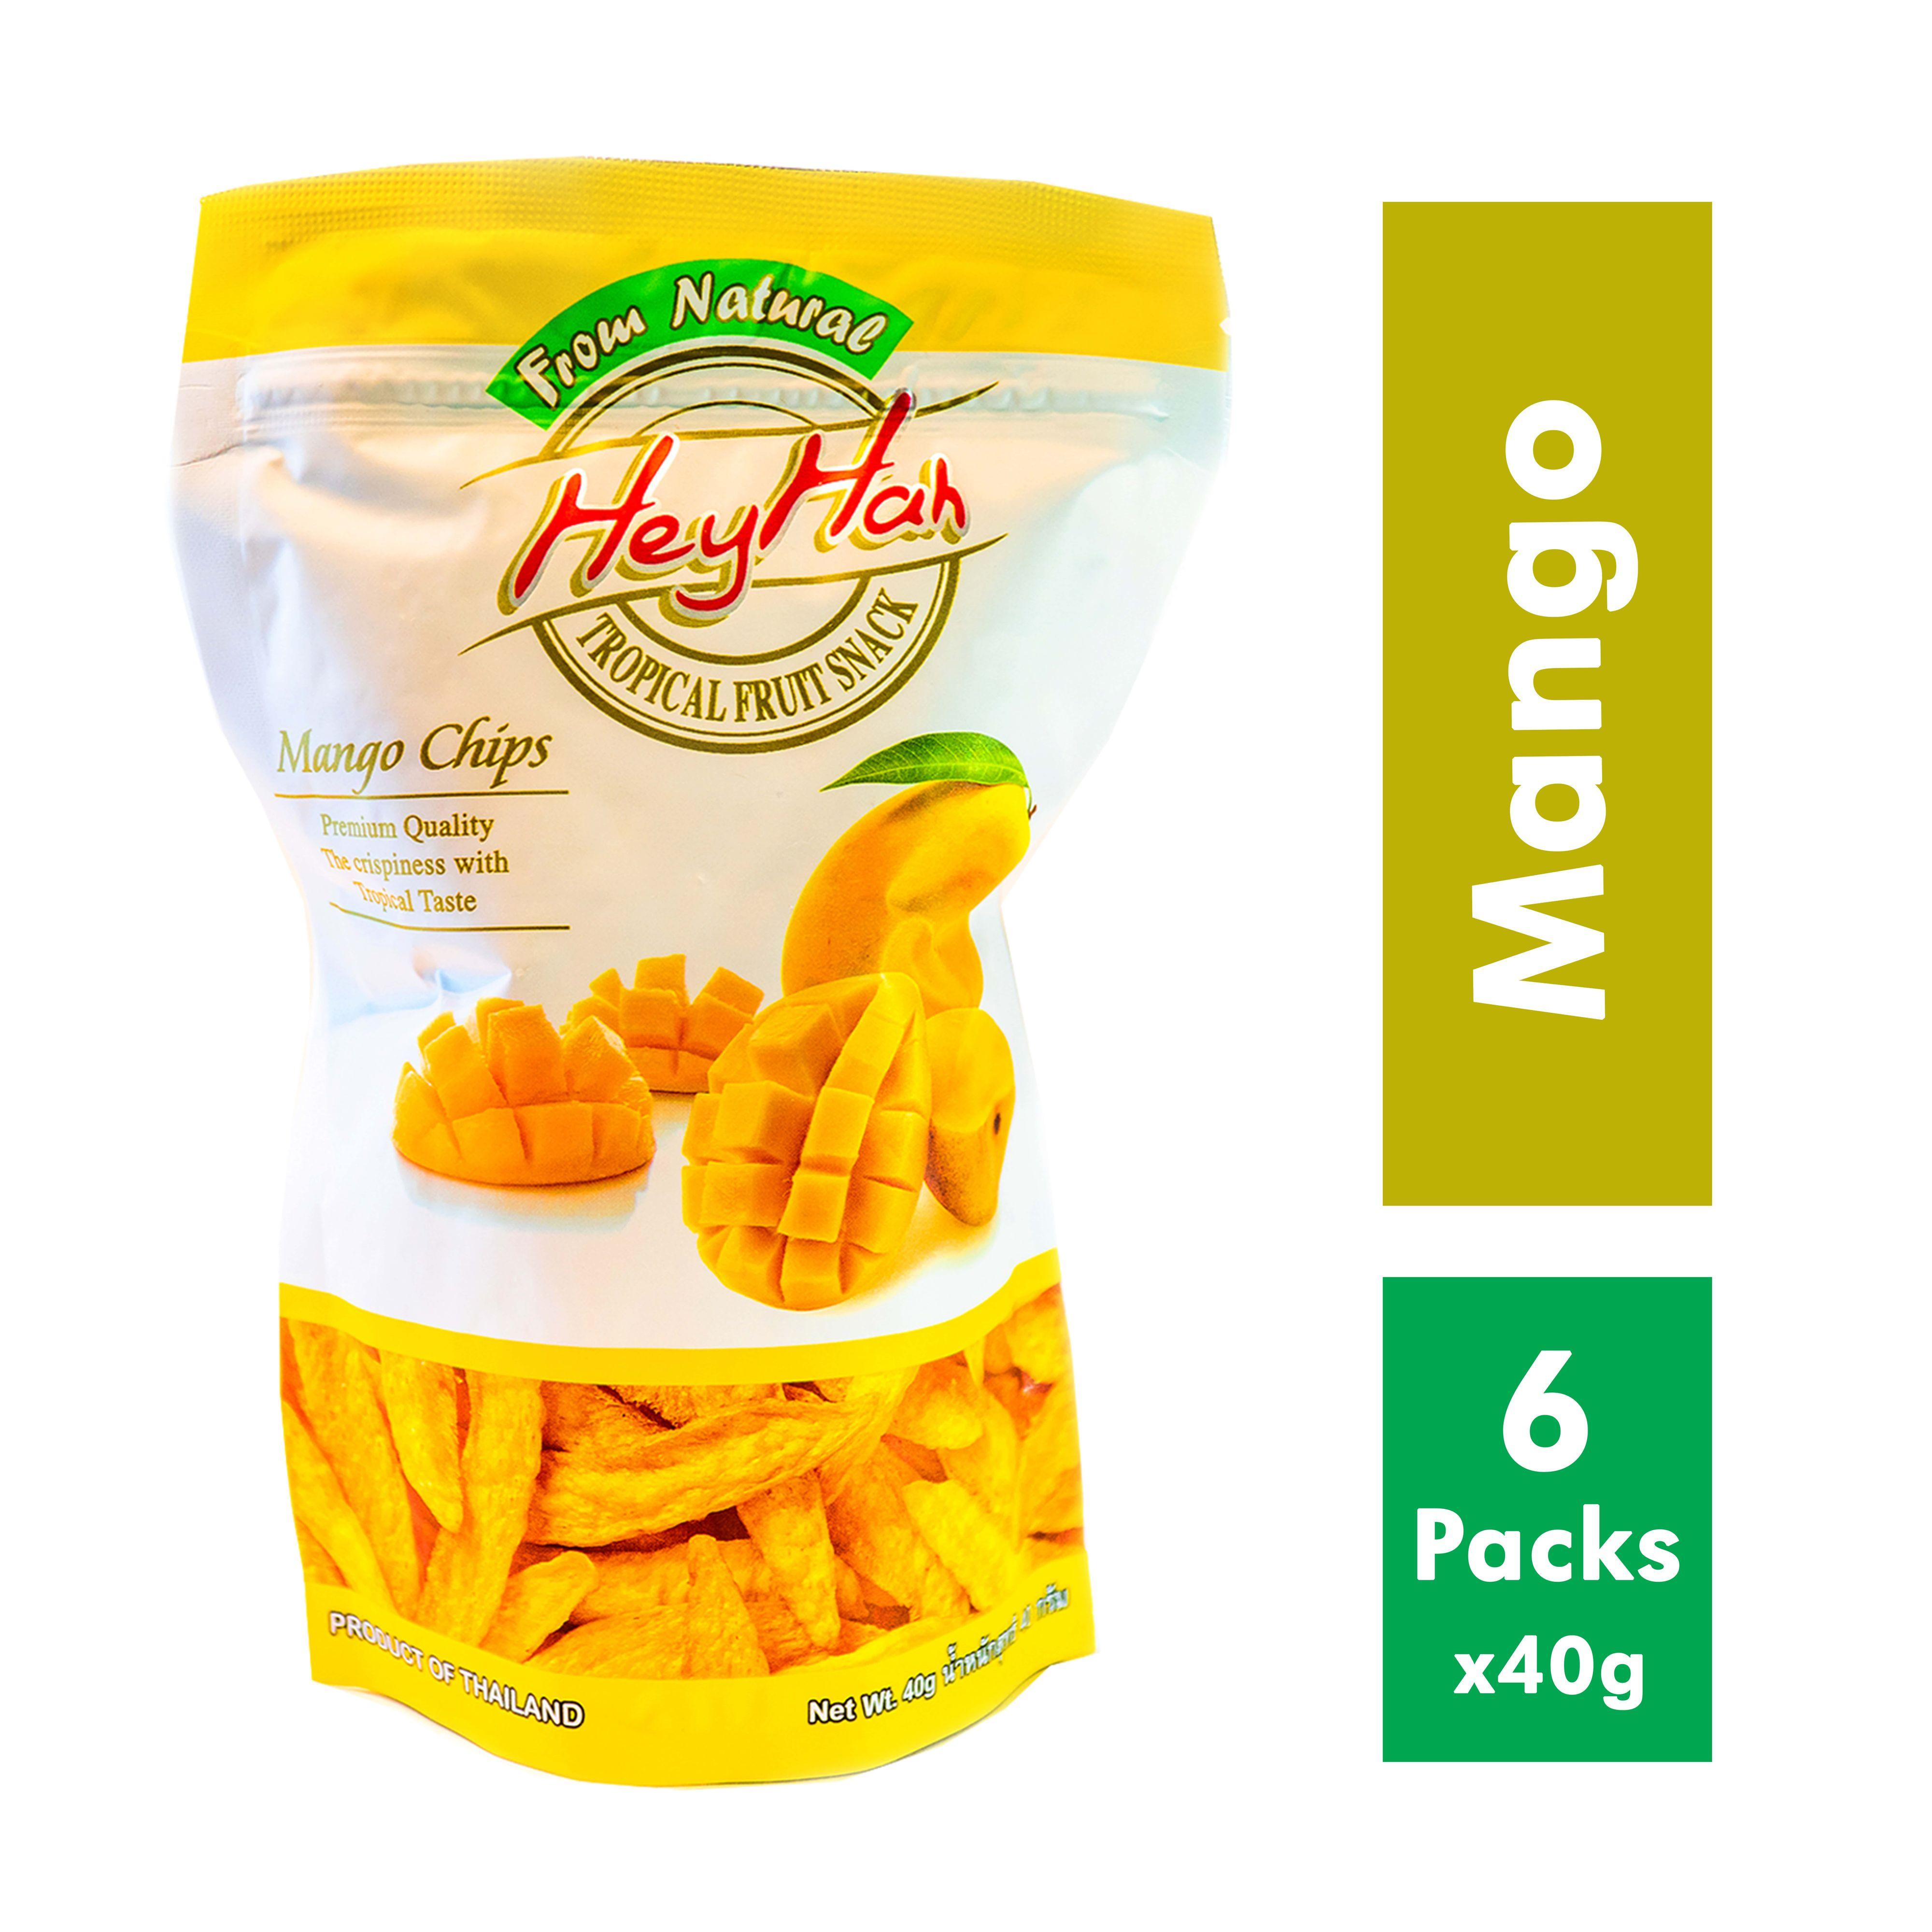 6 Packs X Heyhah Premium Mango Chips (100% Natural; Contains Real Fruits & Vegetables) By Heyhah Health Food.